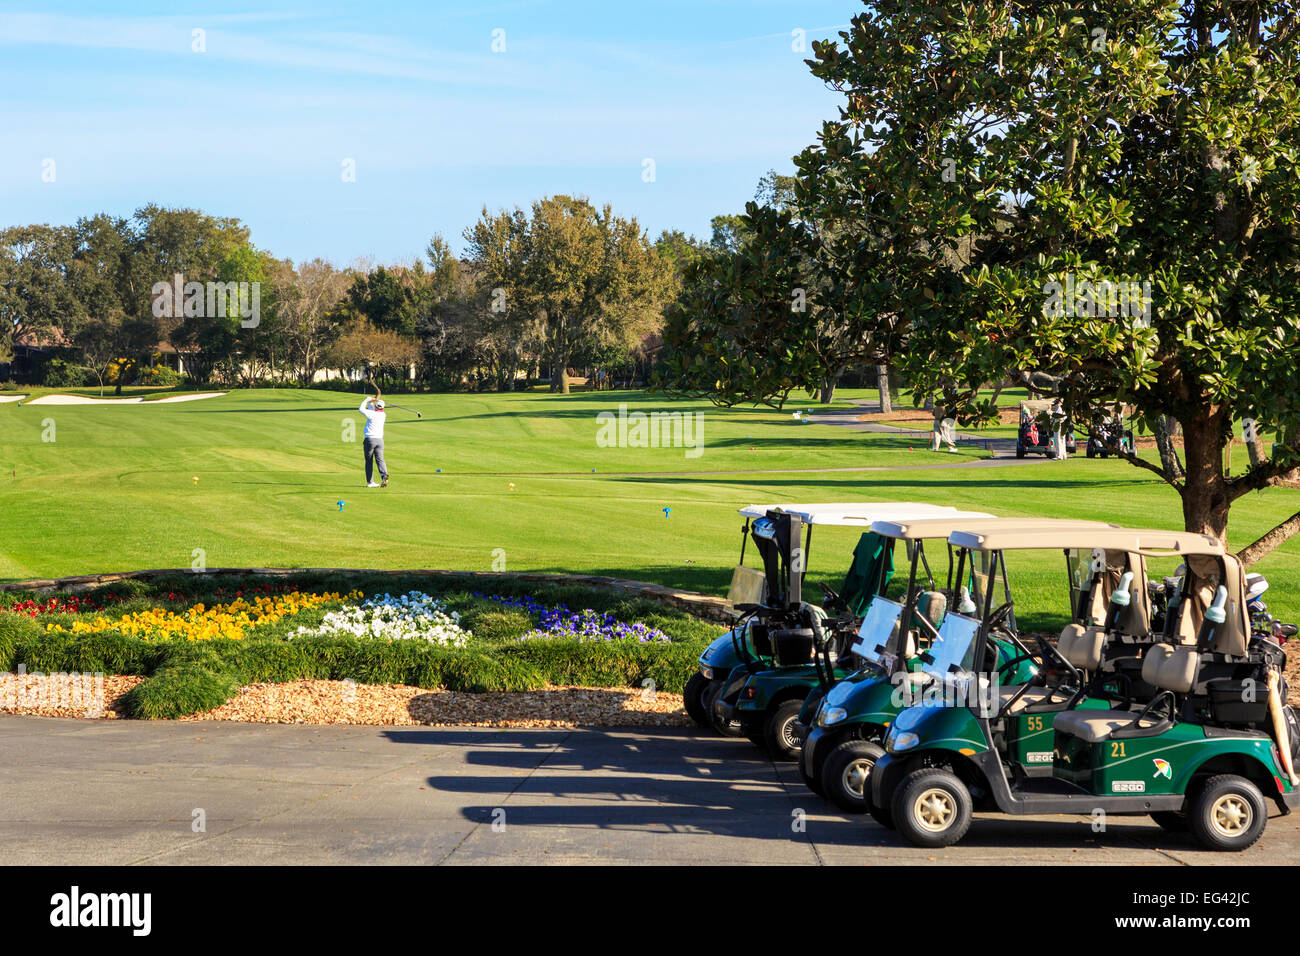 Golfer on the first tee at Arnold Palmer's Bay Hill Golf Course, Orlando, Florida, America - Stock Image